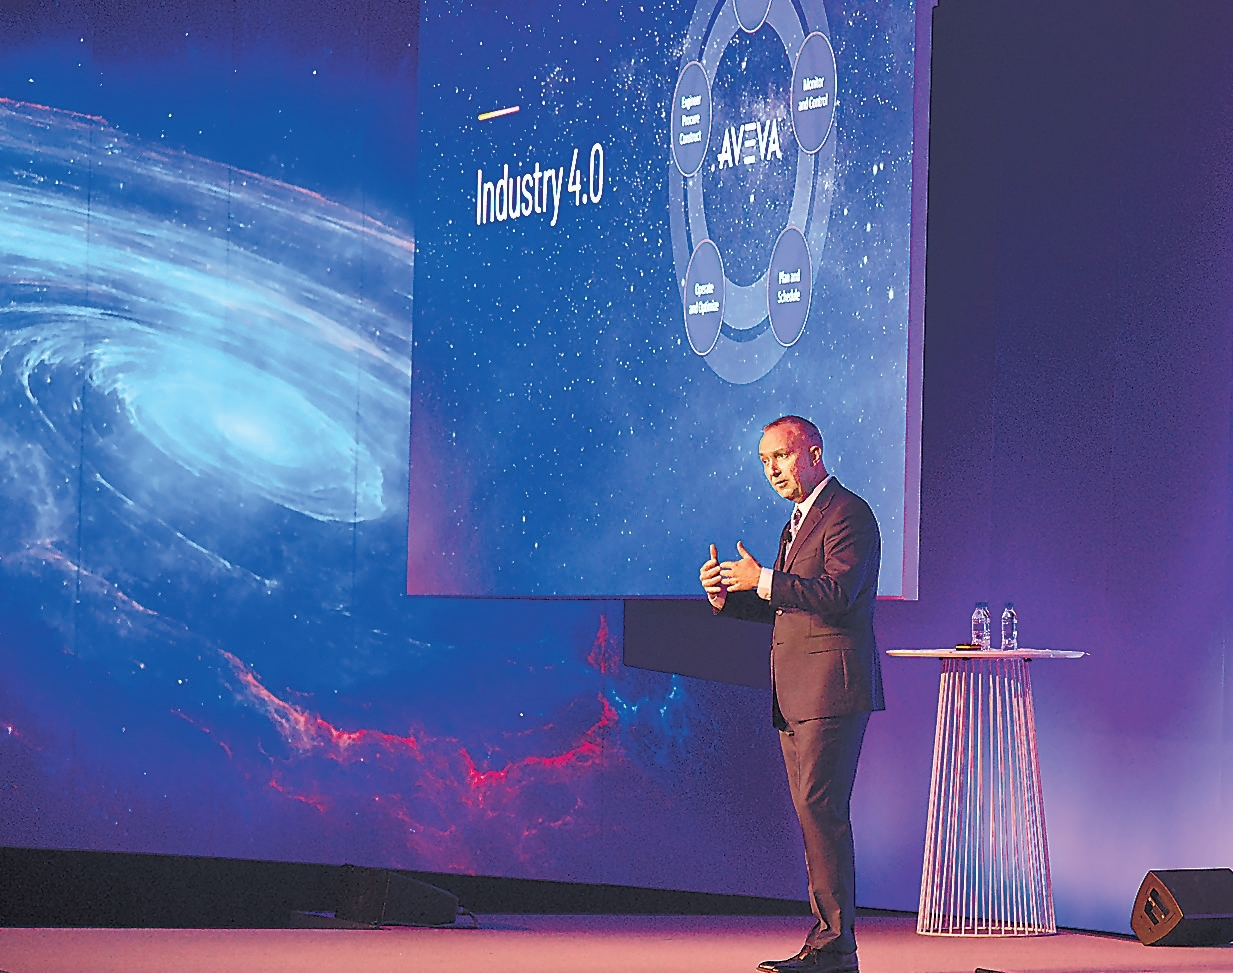 Aveva CEO Craig Hayman delivers the opening speech at the Aveva World Summit 2019 in Singapore on Tuesday. (Aveva)